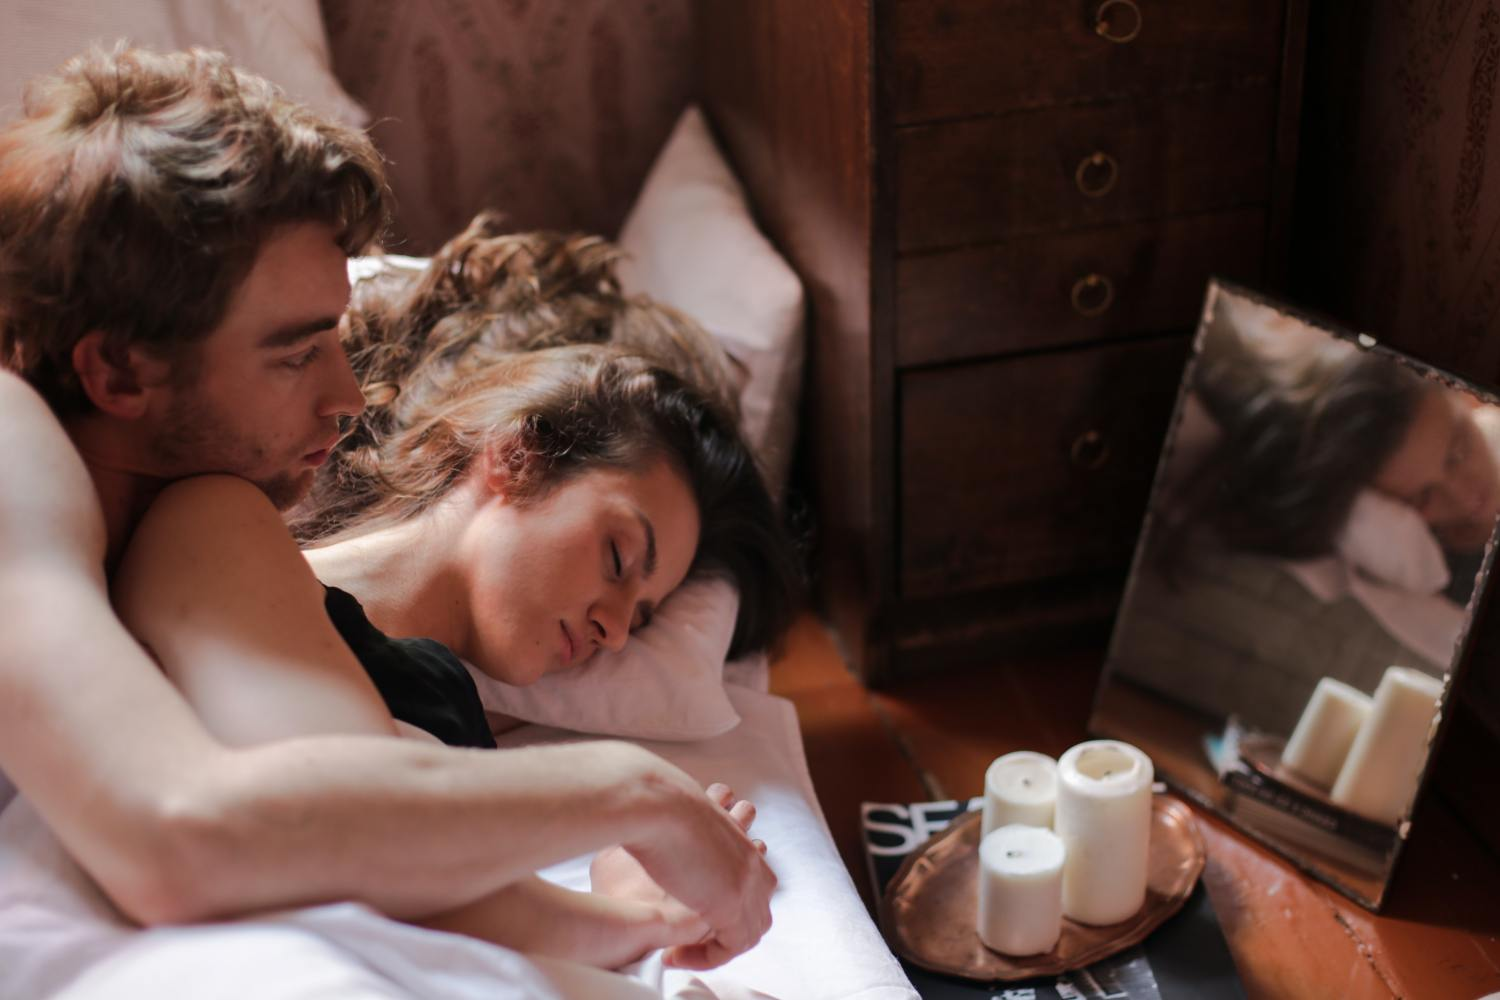 4 Heartwarming Bedtime Stories For Your Girlfriend That Will Send Her To Sleep Smiling